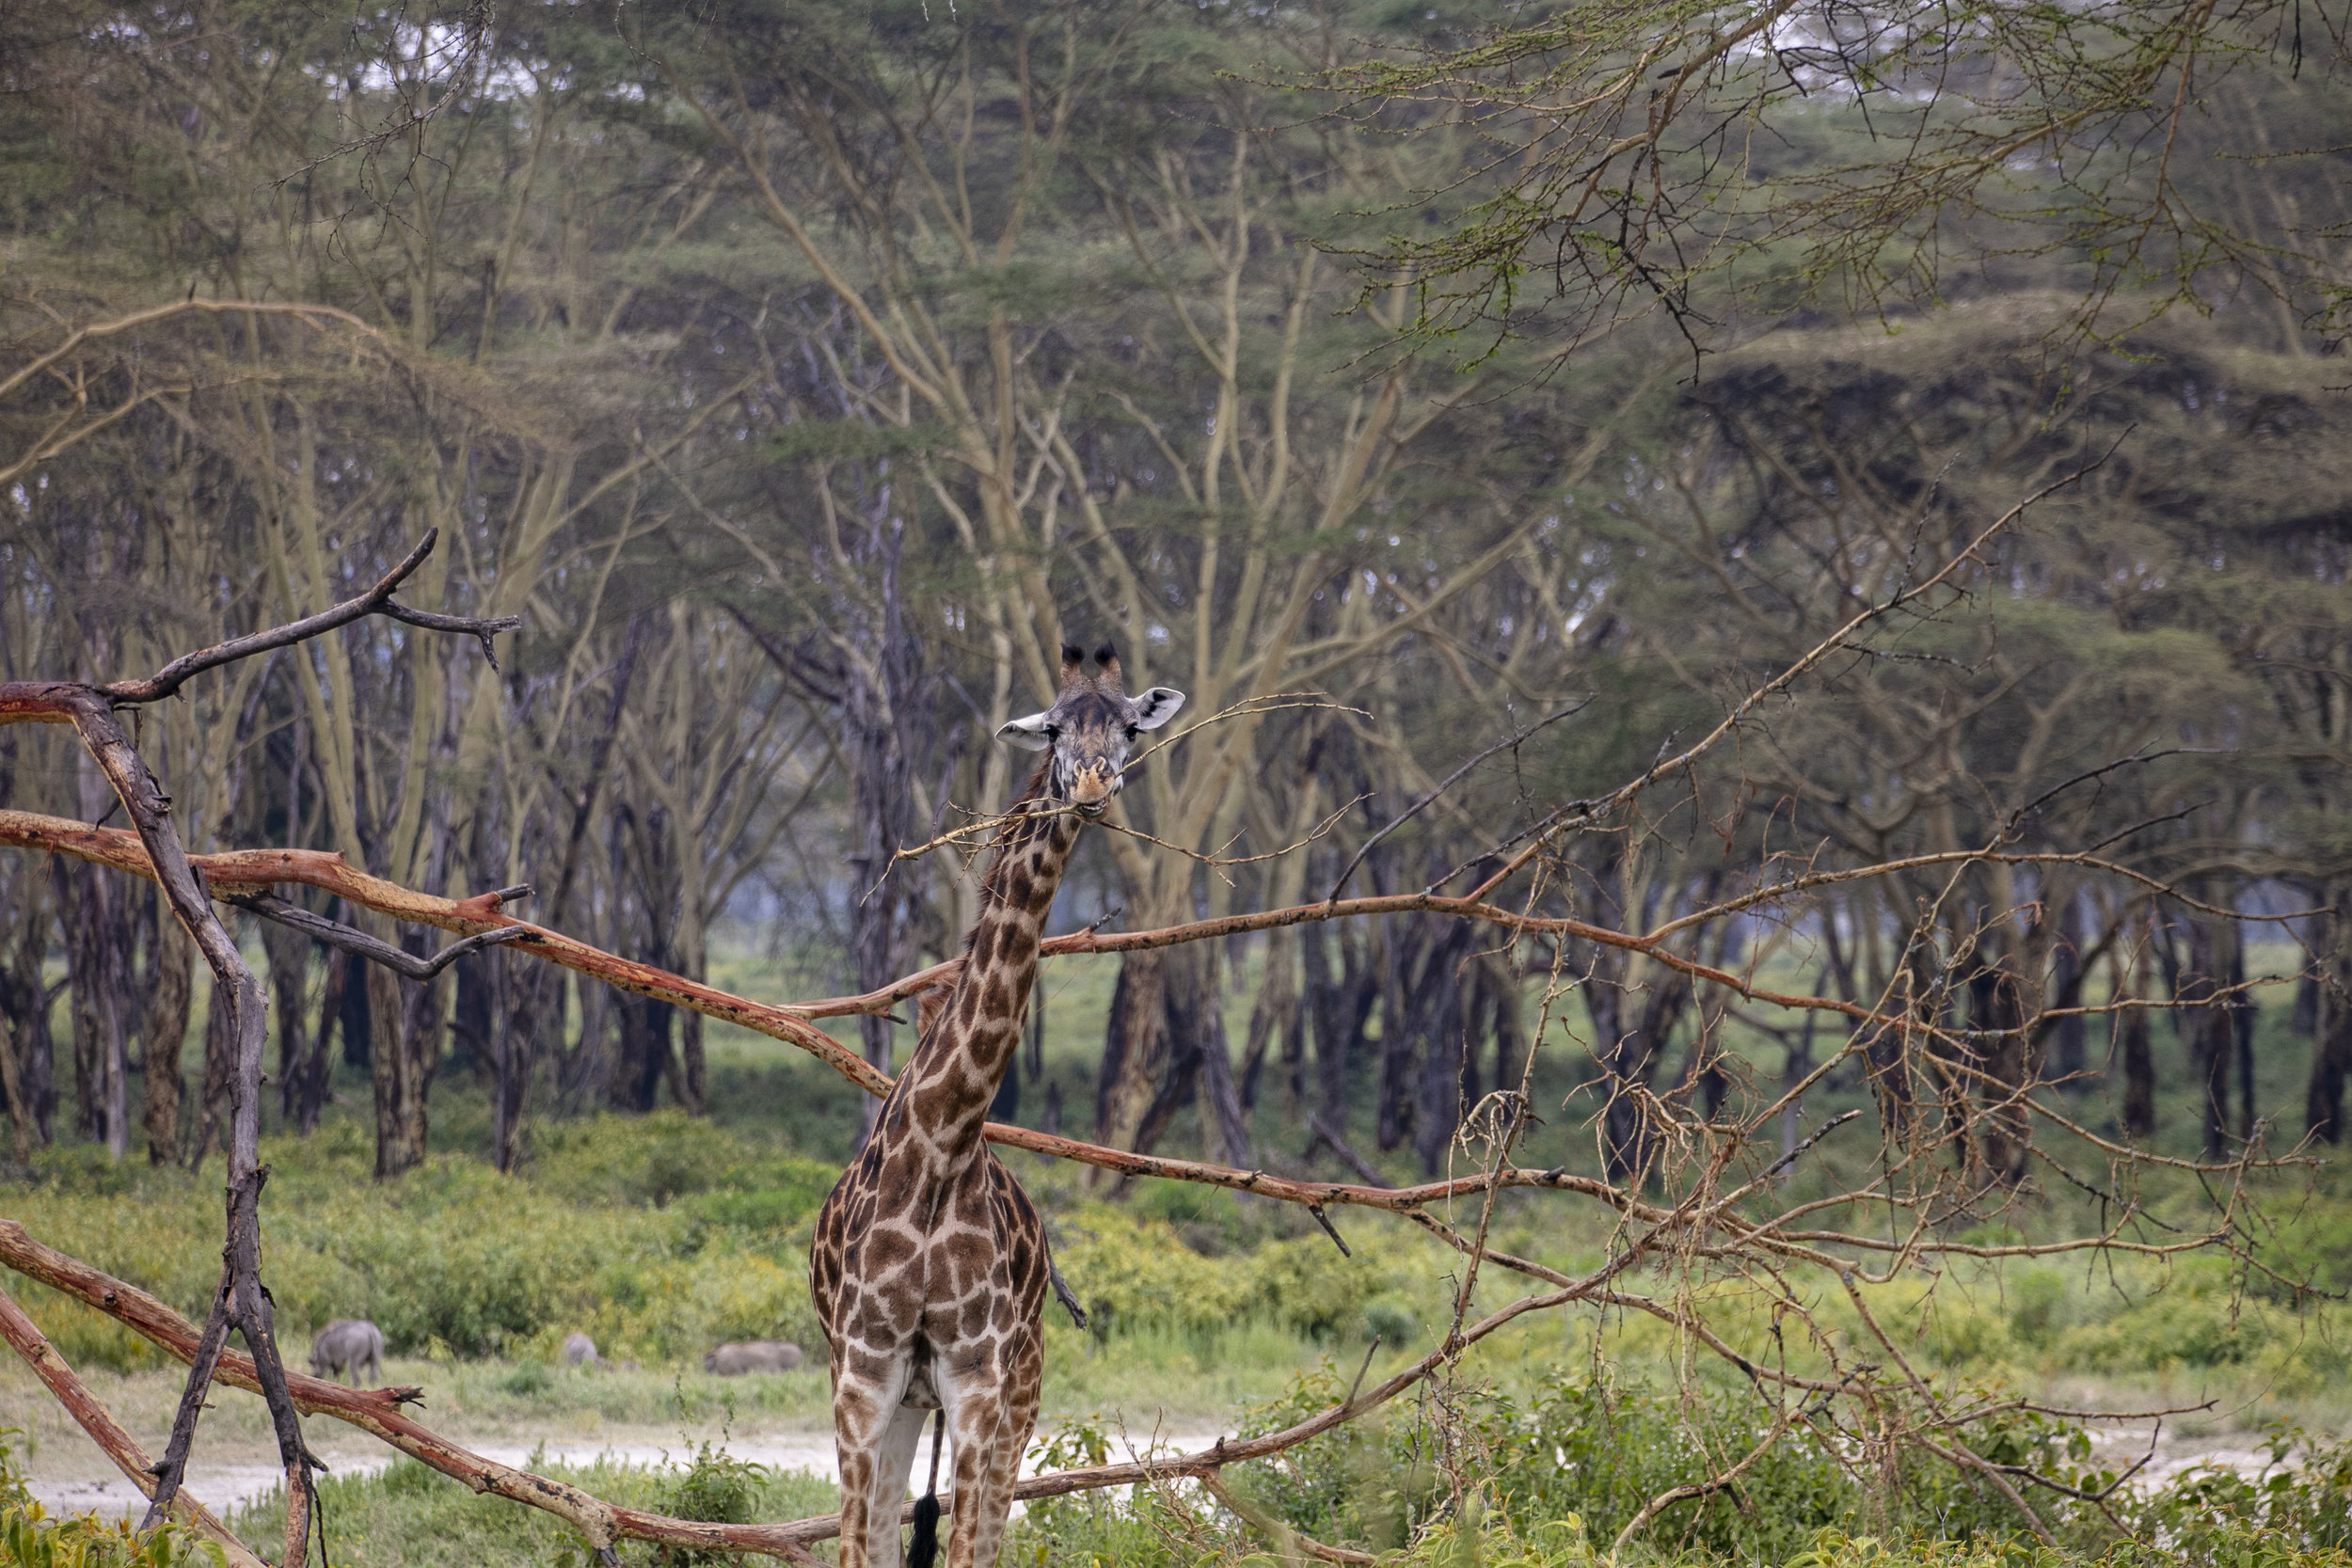 African Adventure - 21 July '18 - Lake Naivasha to Crater Lake Game Sanctuary - 027.JPG